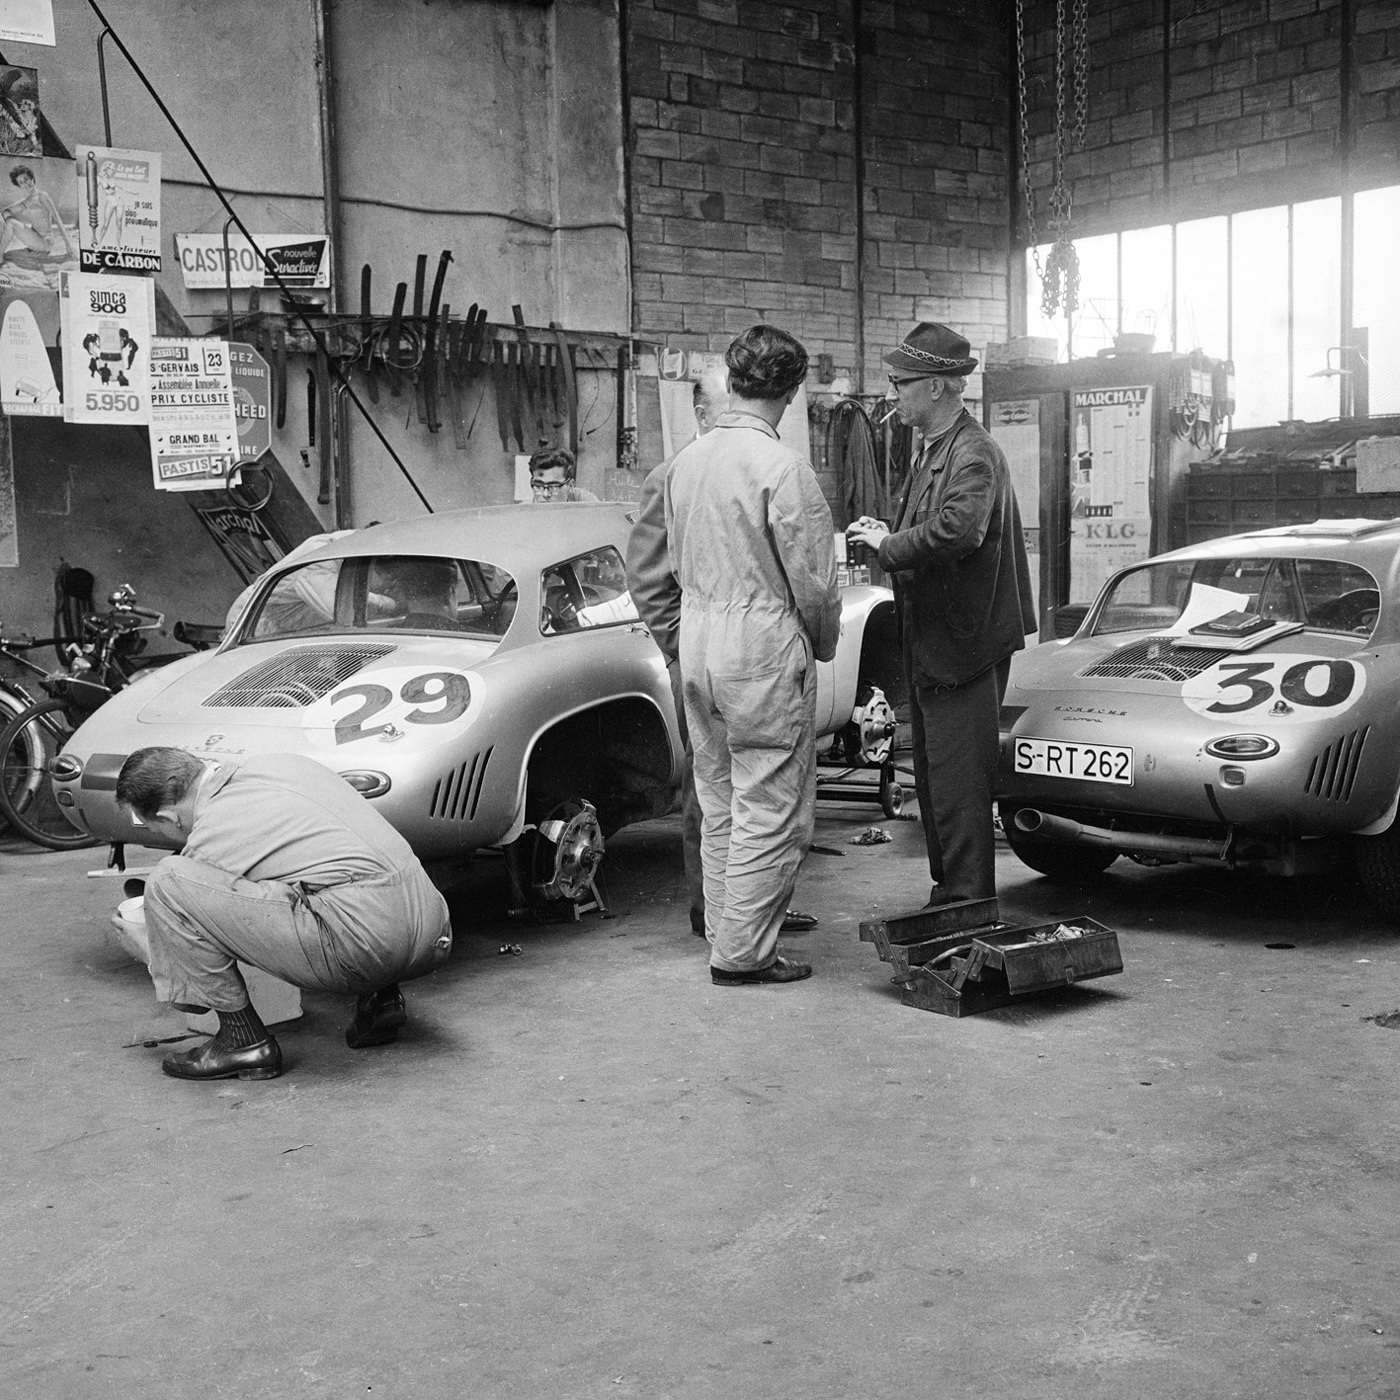 For The Thrill of Speed - Le Mans 1963